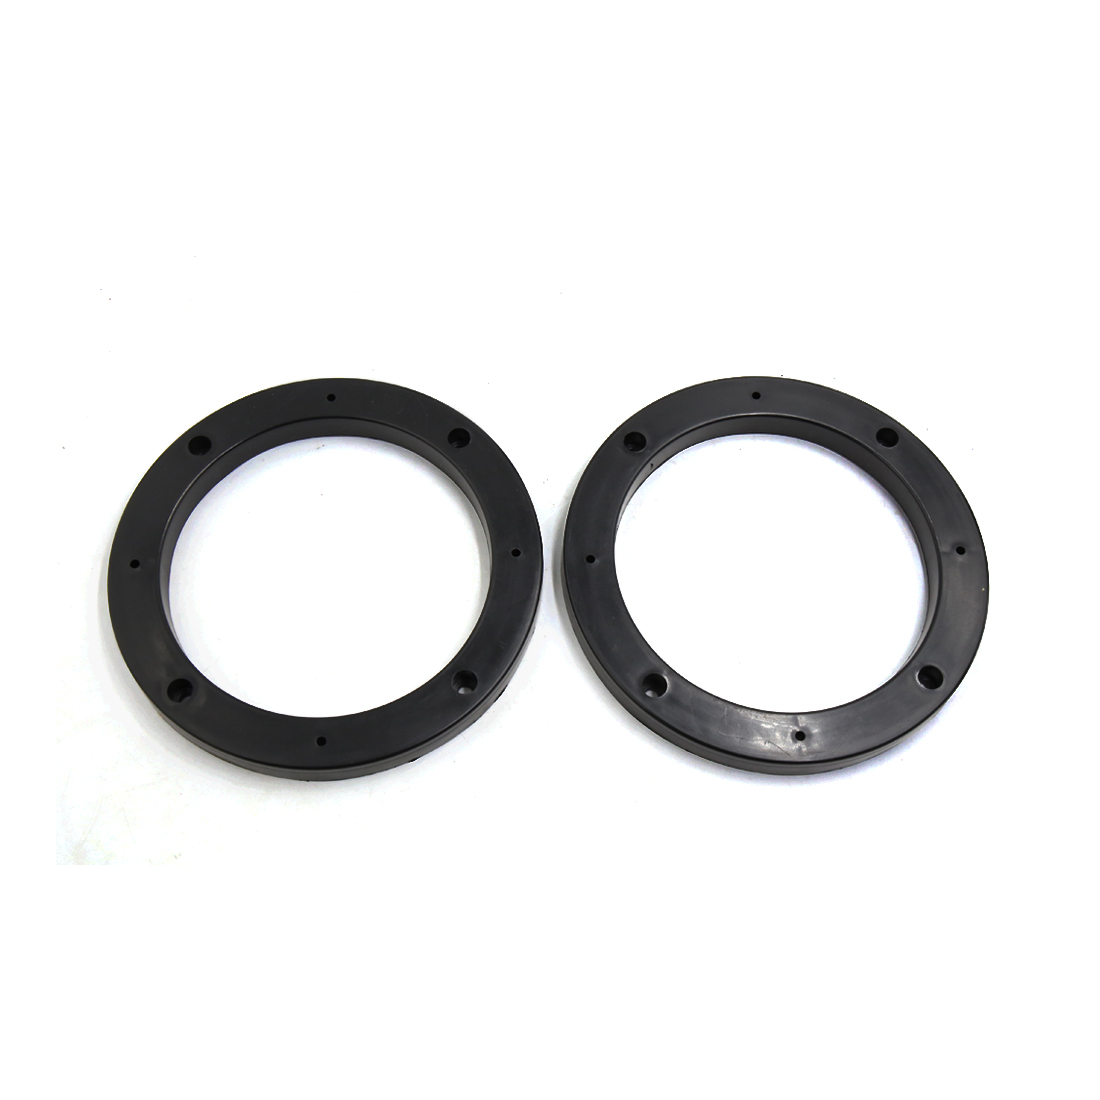 "2Pcs Black Plastic Car Auto Stereo 5"" Speaker Fitting Spacer Adaptor 0.5"" Depth"